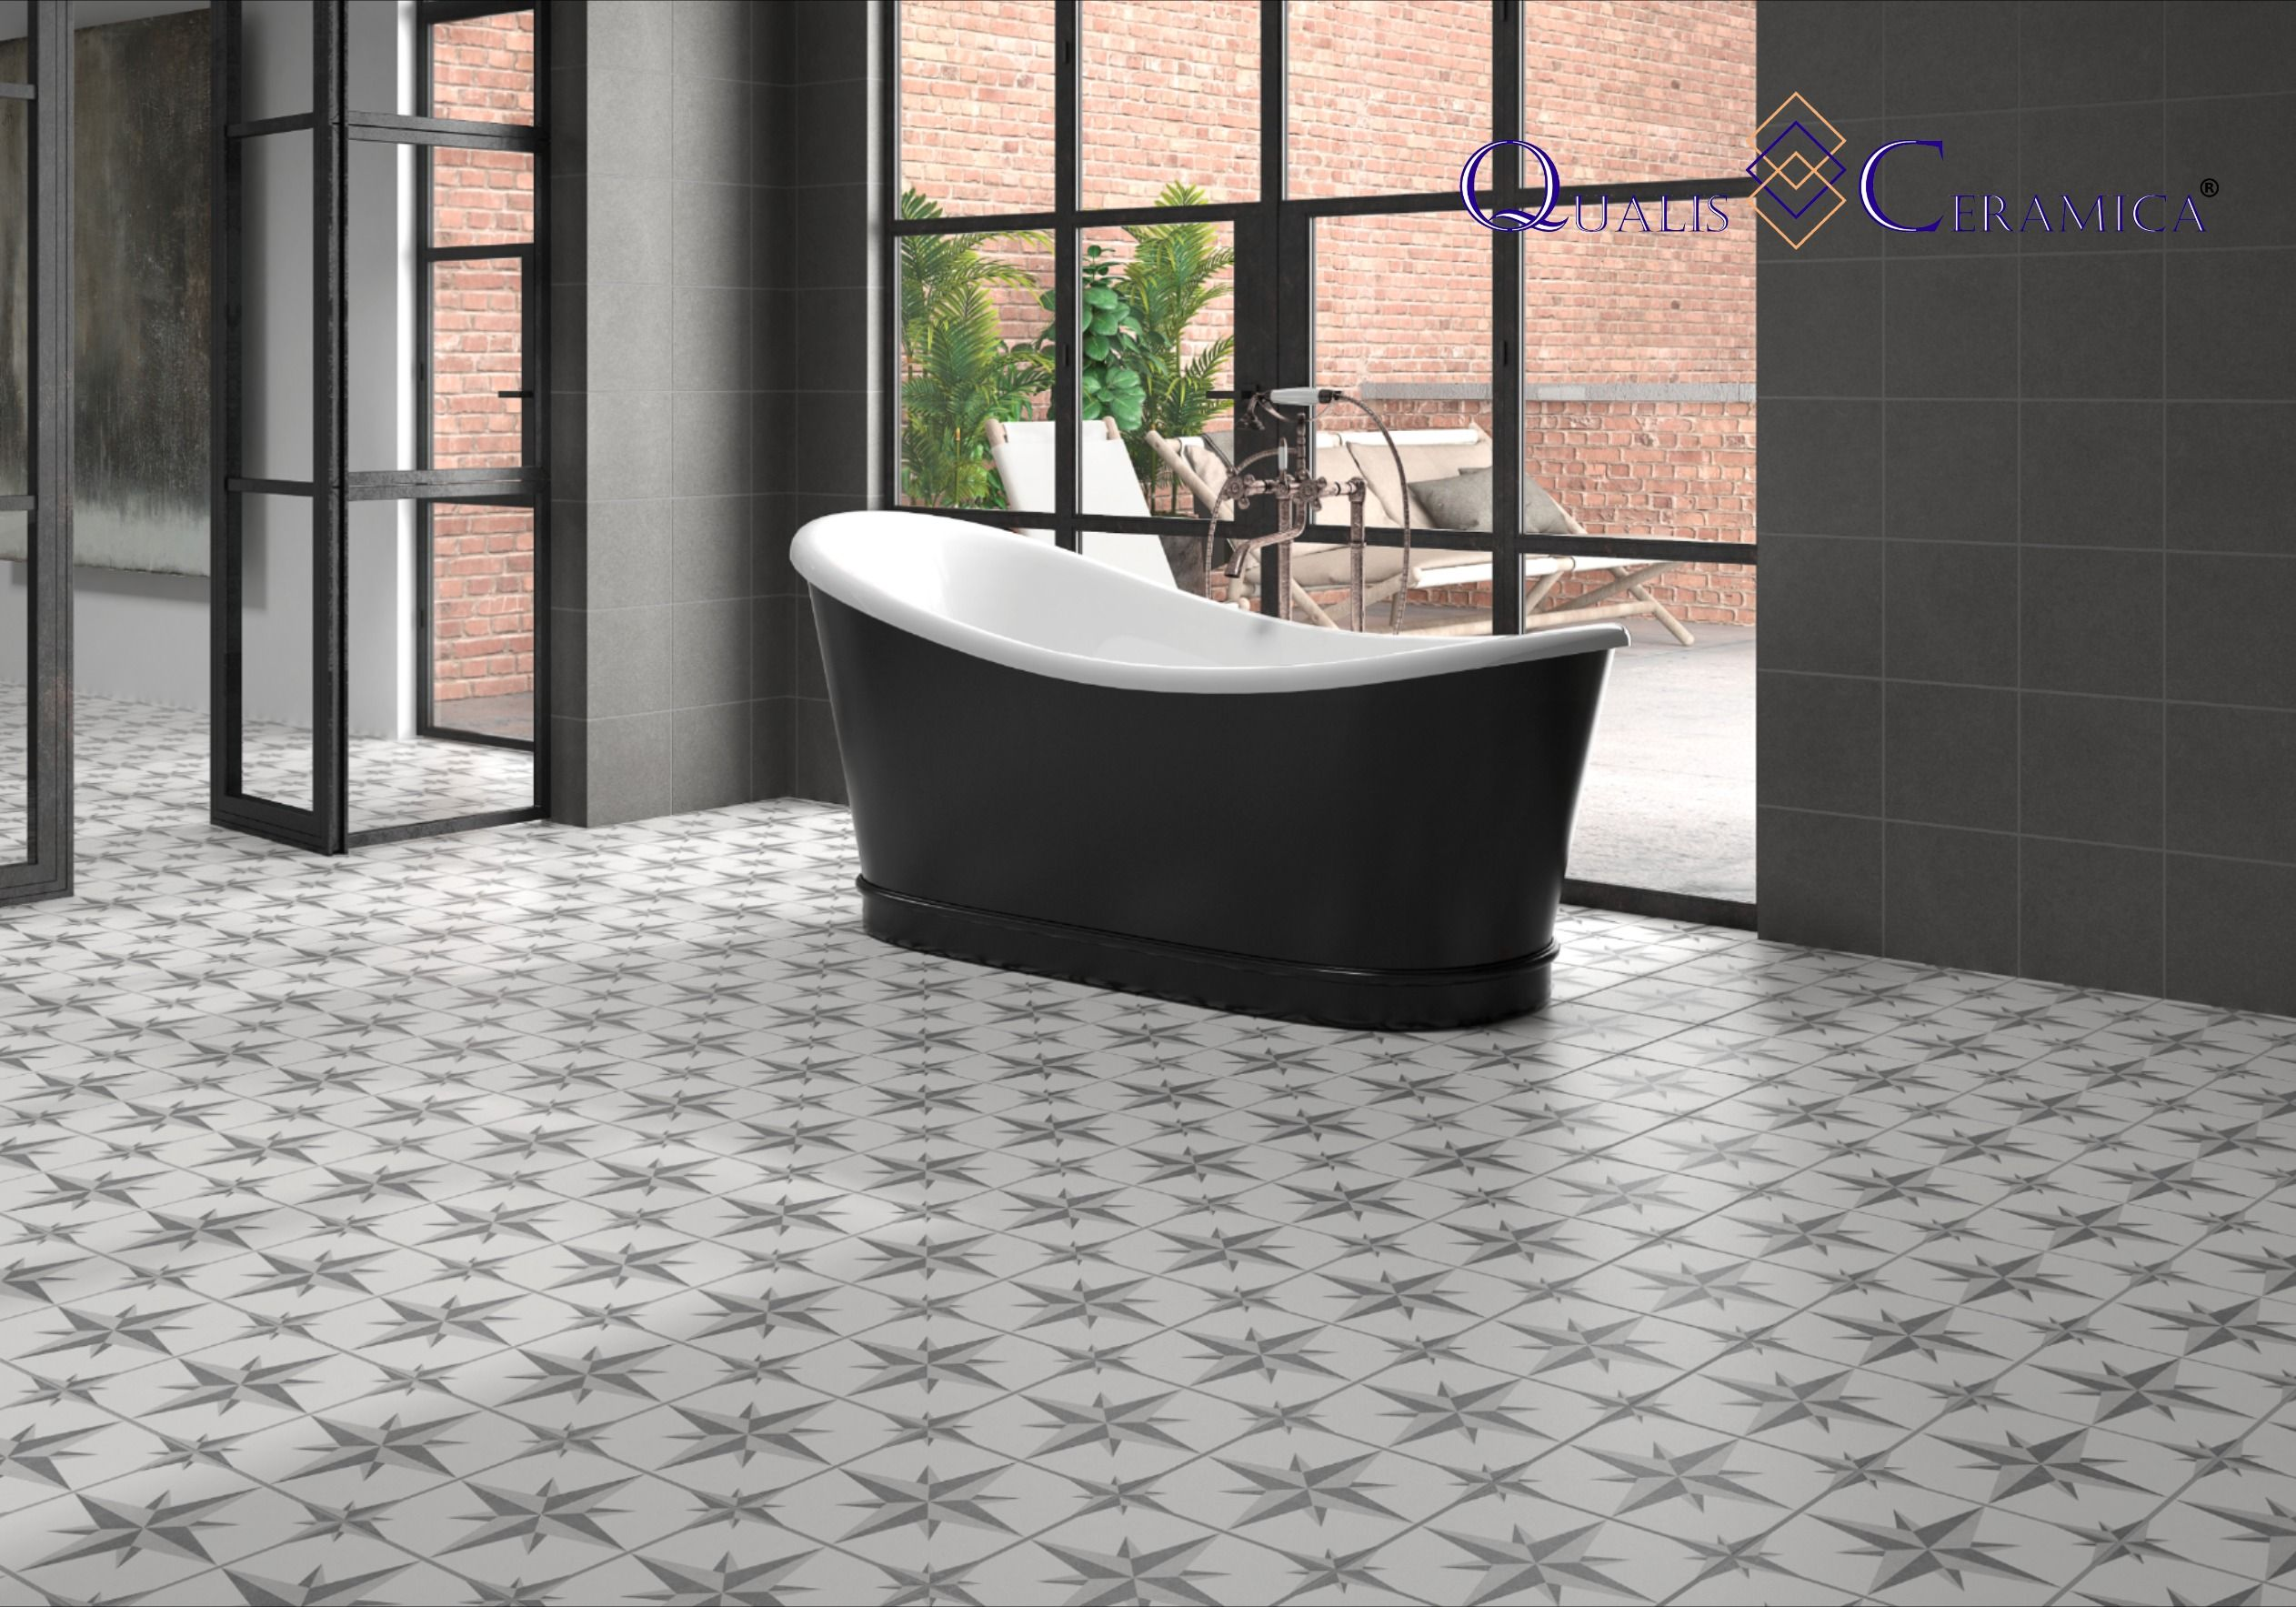 Master Bath Floor Tile Qualis Ceramica Gibraltar Europa Gris 10x10 Cement Look Porcelain Tile In 2020 Tile Floor Slip Resistant Tiles Tile Design